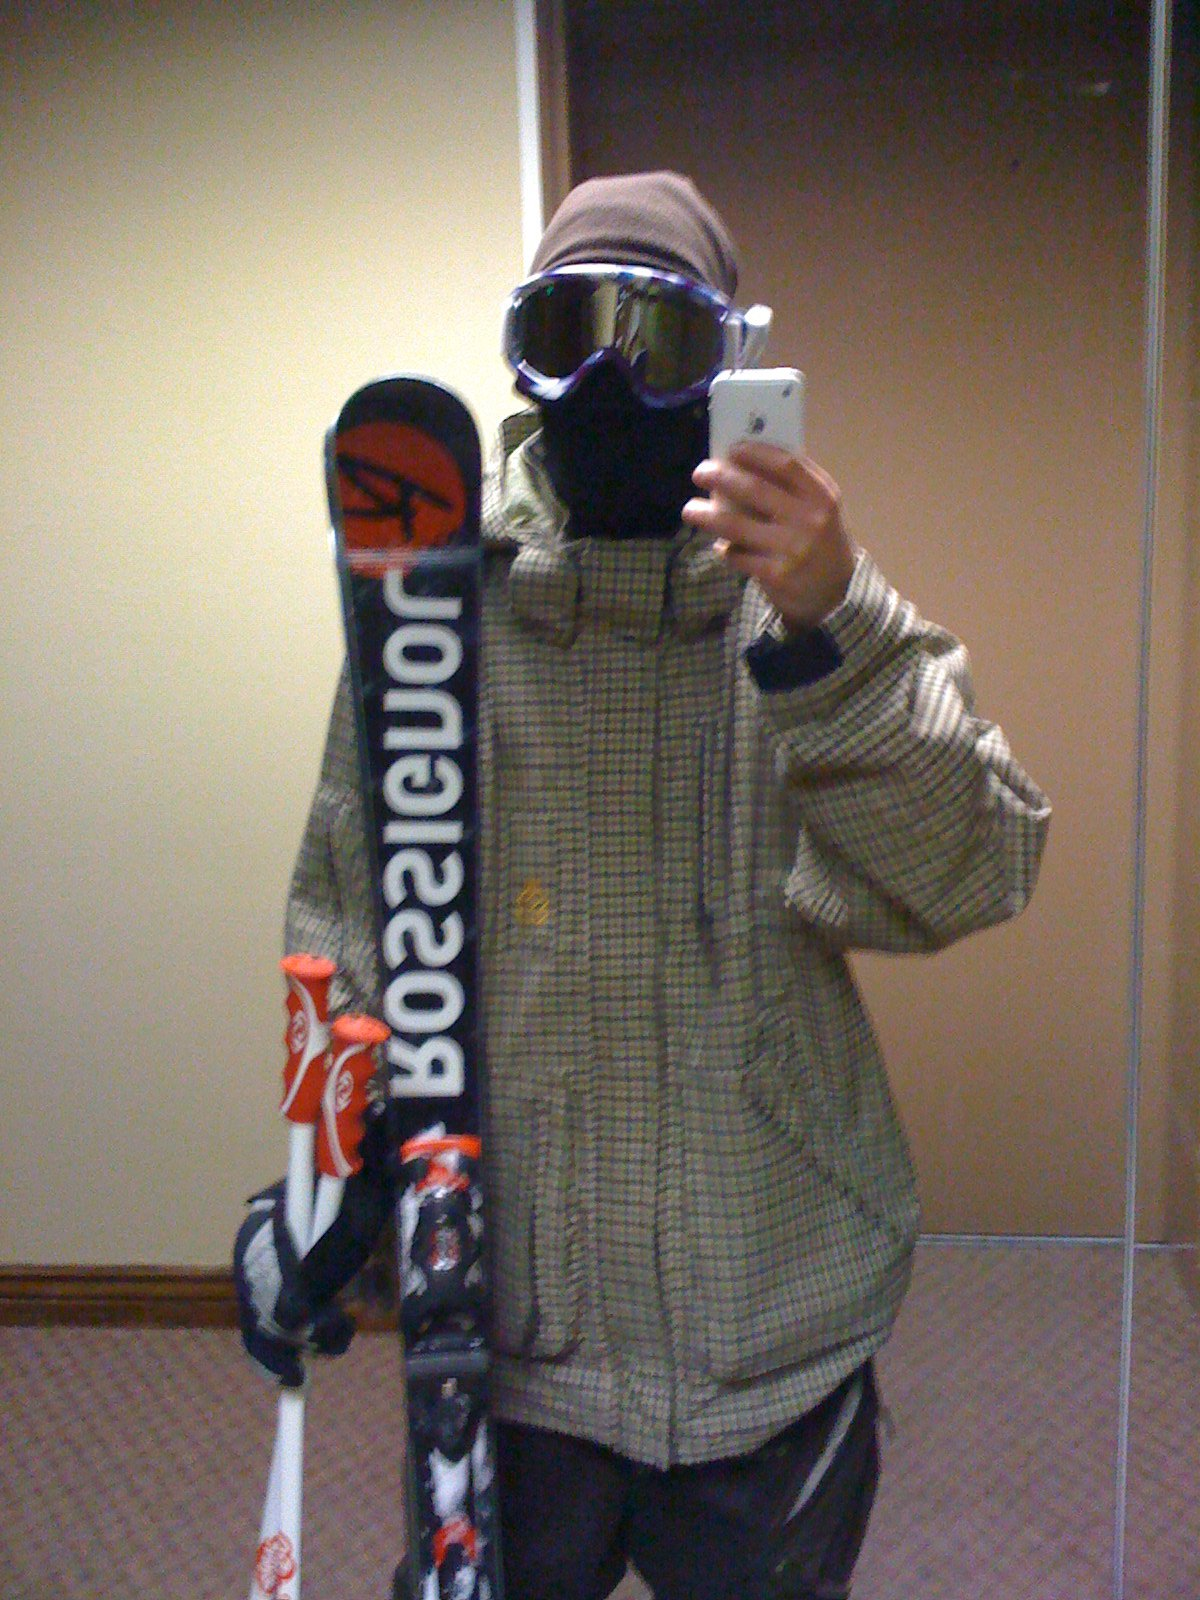 Me and my Rossignol's Classic 70's